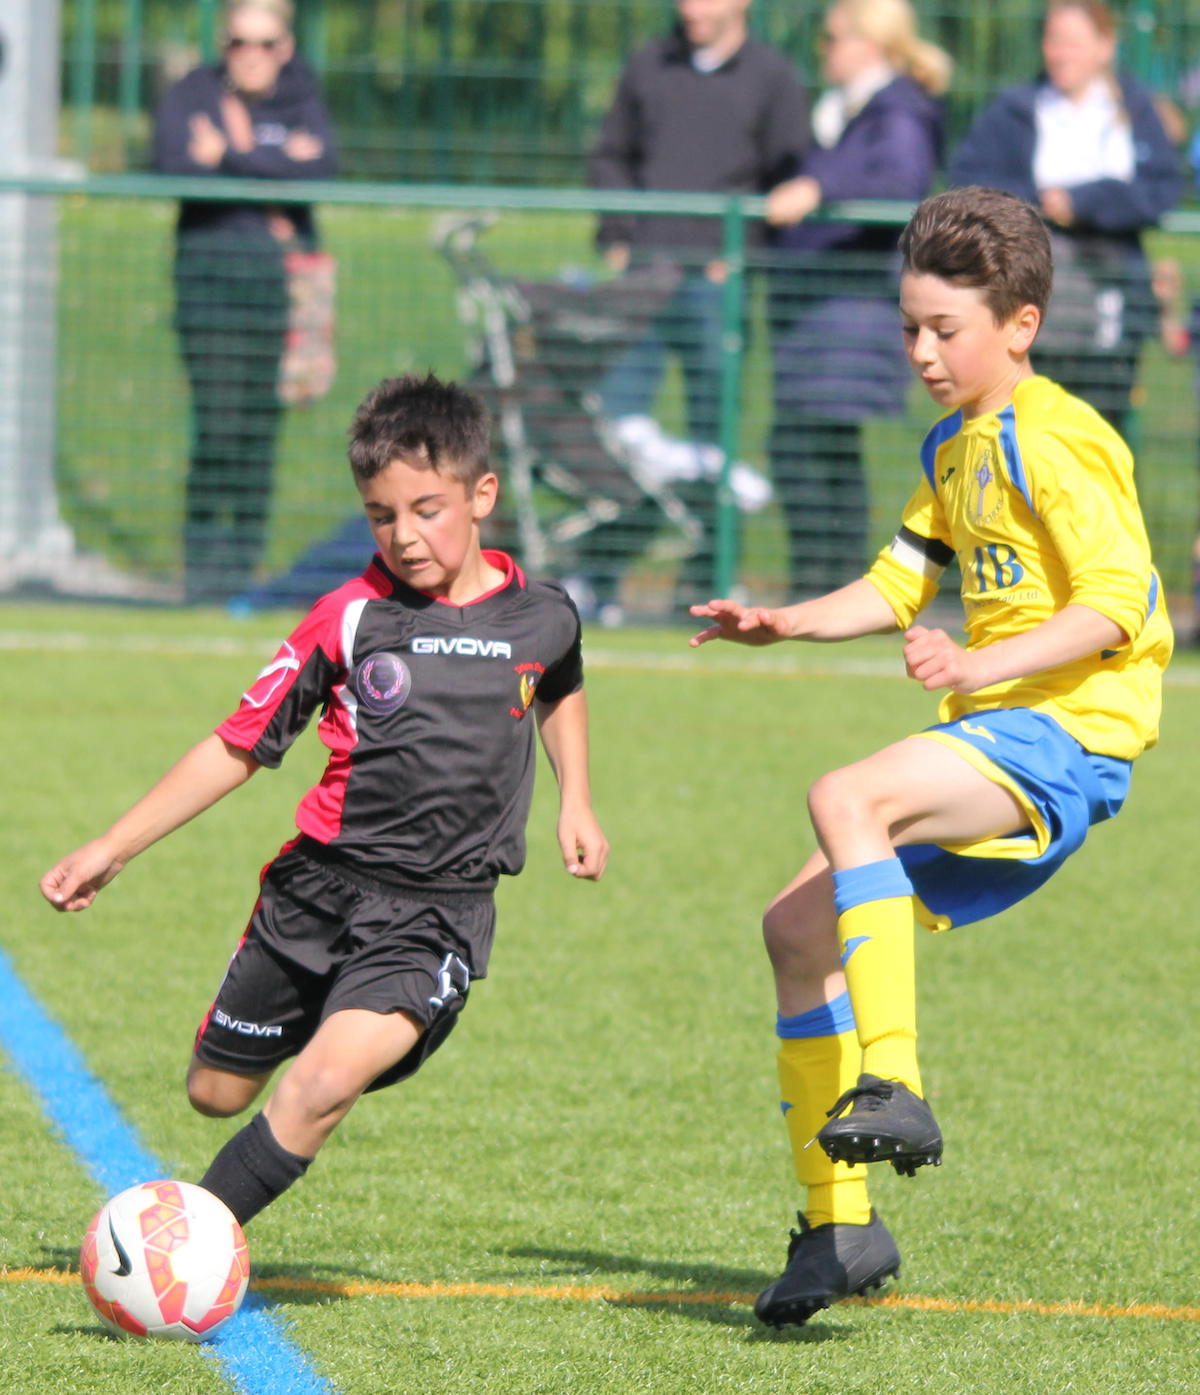 A_young_player_runs_past_an_opponent_during_a_football_game_football4football